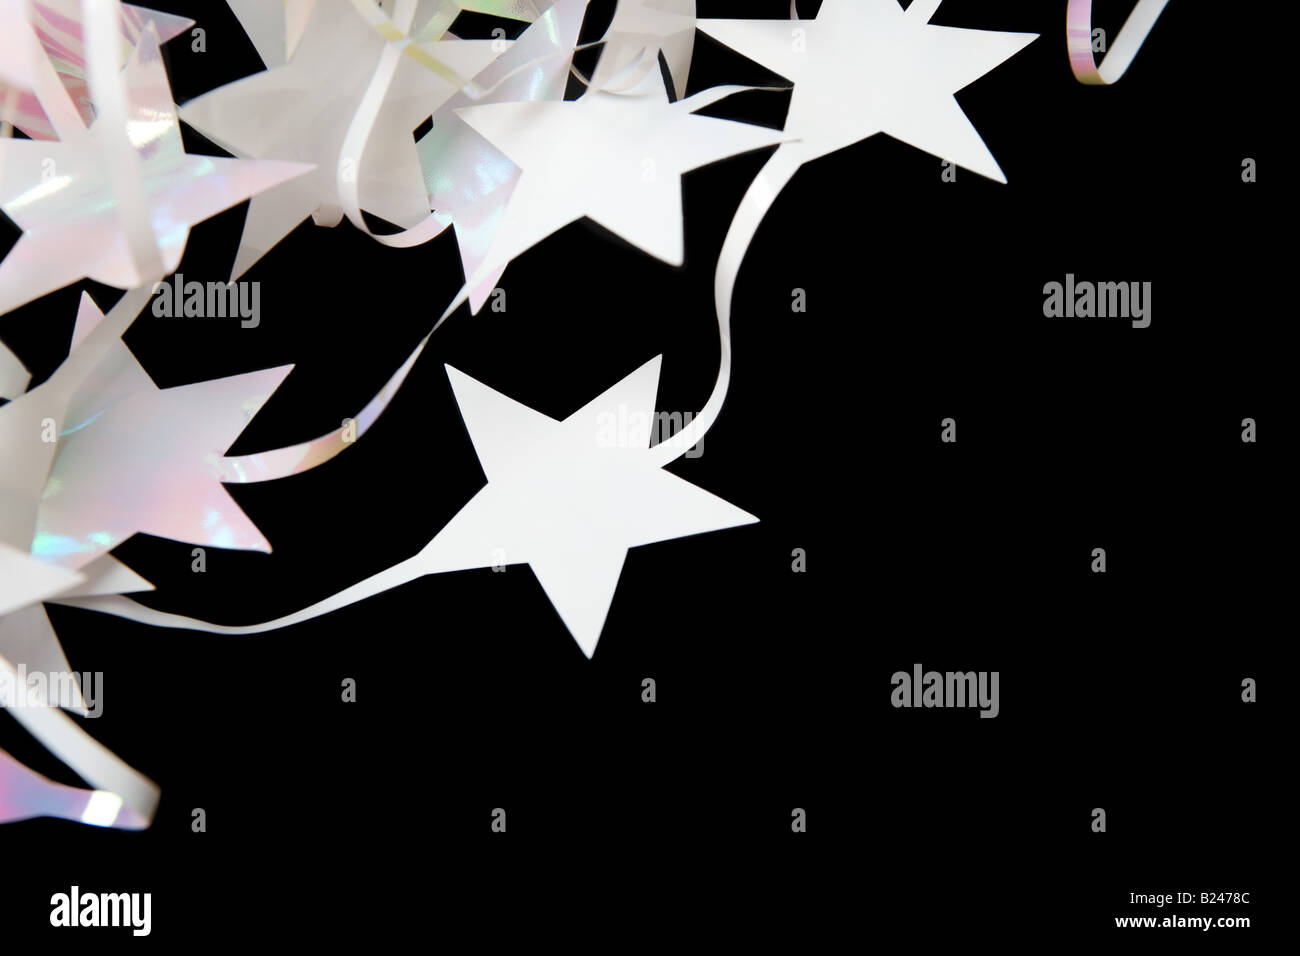 Star shaped christmas decorations - Stock Image